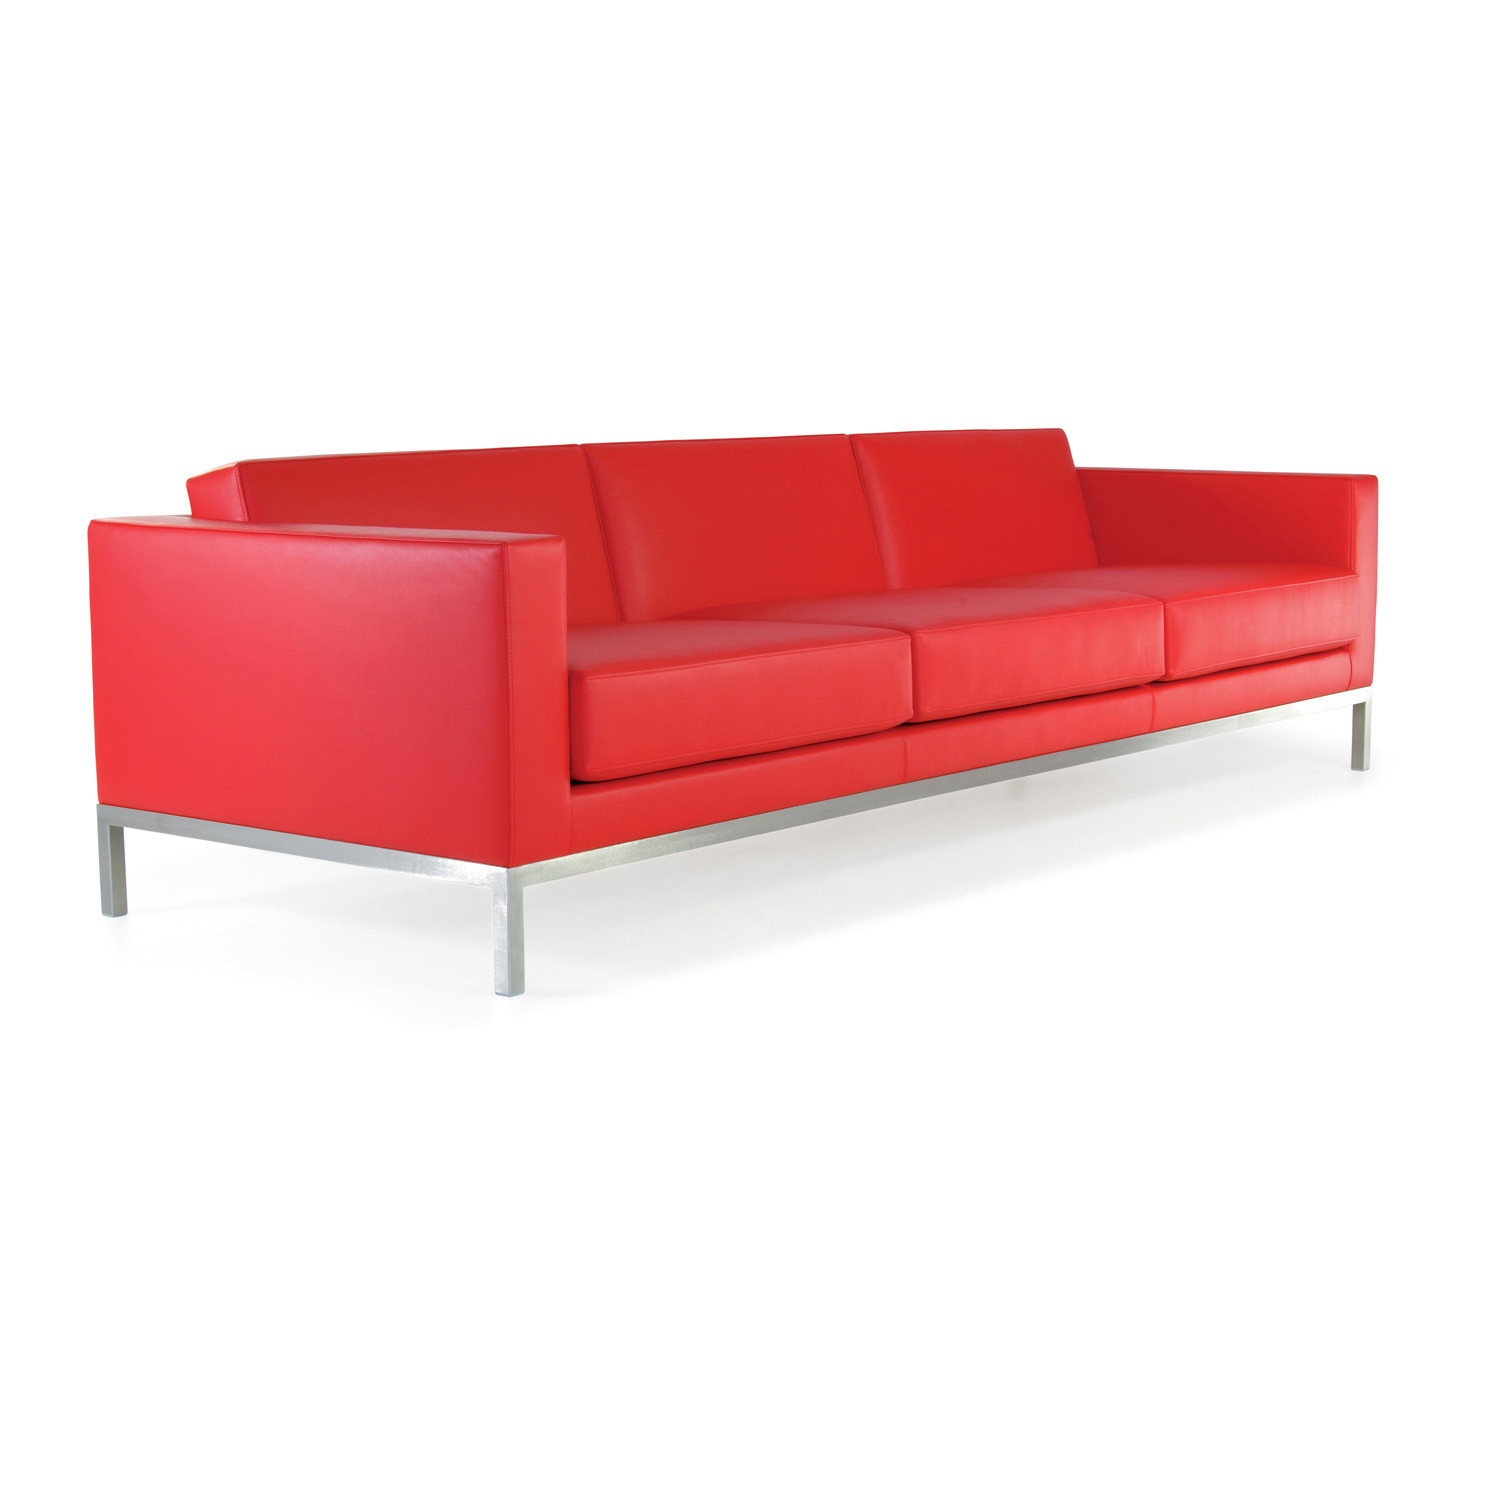 HM26 Three-Seater Sofa in red leather upholstery